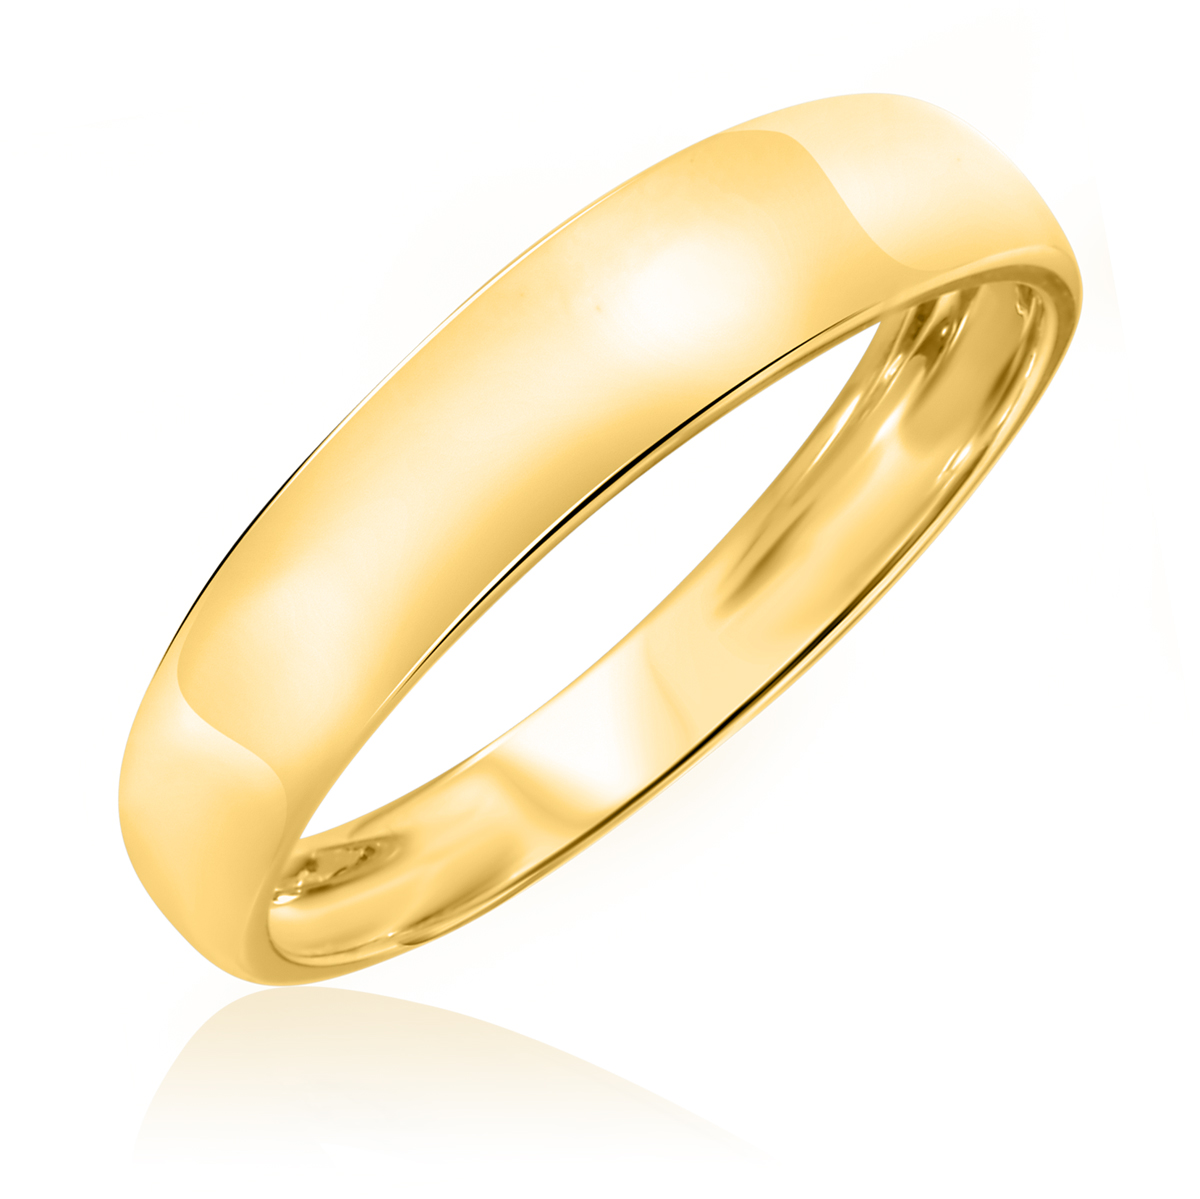 Traditional High Polish Rounded, 5 millimeter, 10K Yellow Gold Traditional Mens